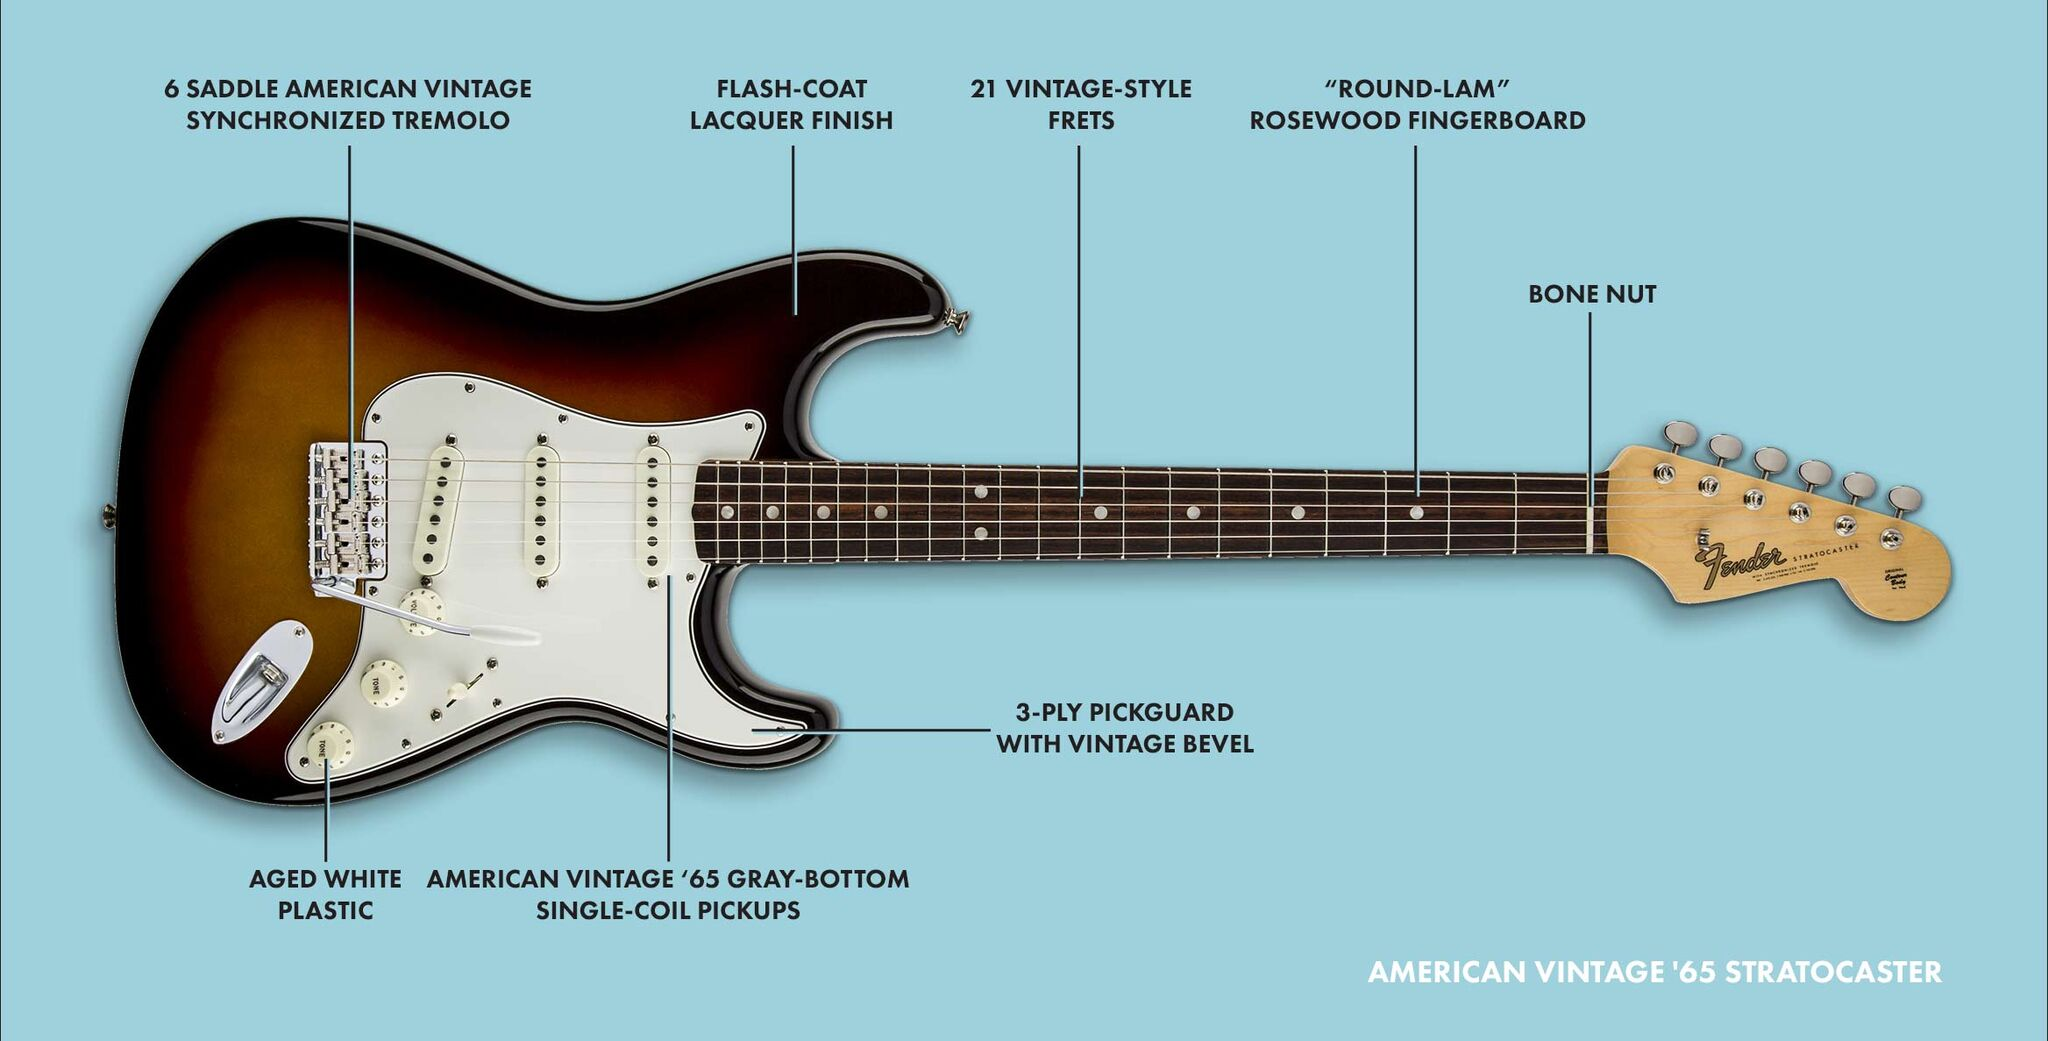 Excellent Strat Style Guitar Thick Ibanez Wiring Rectangular Dragonfire Pickups Wiring Diagram Les Paul 3 Pickup Wiring Young Dimarzio Color Code DarkCar Alarm Installation Instructions Stratocaster Guide: Which Strat To Buy, Model Comparison | Fender